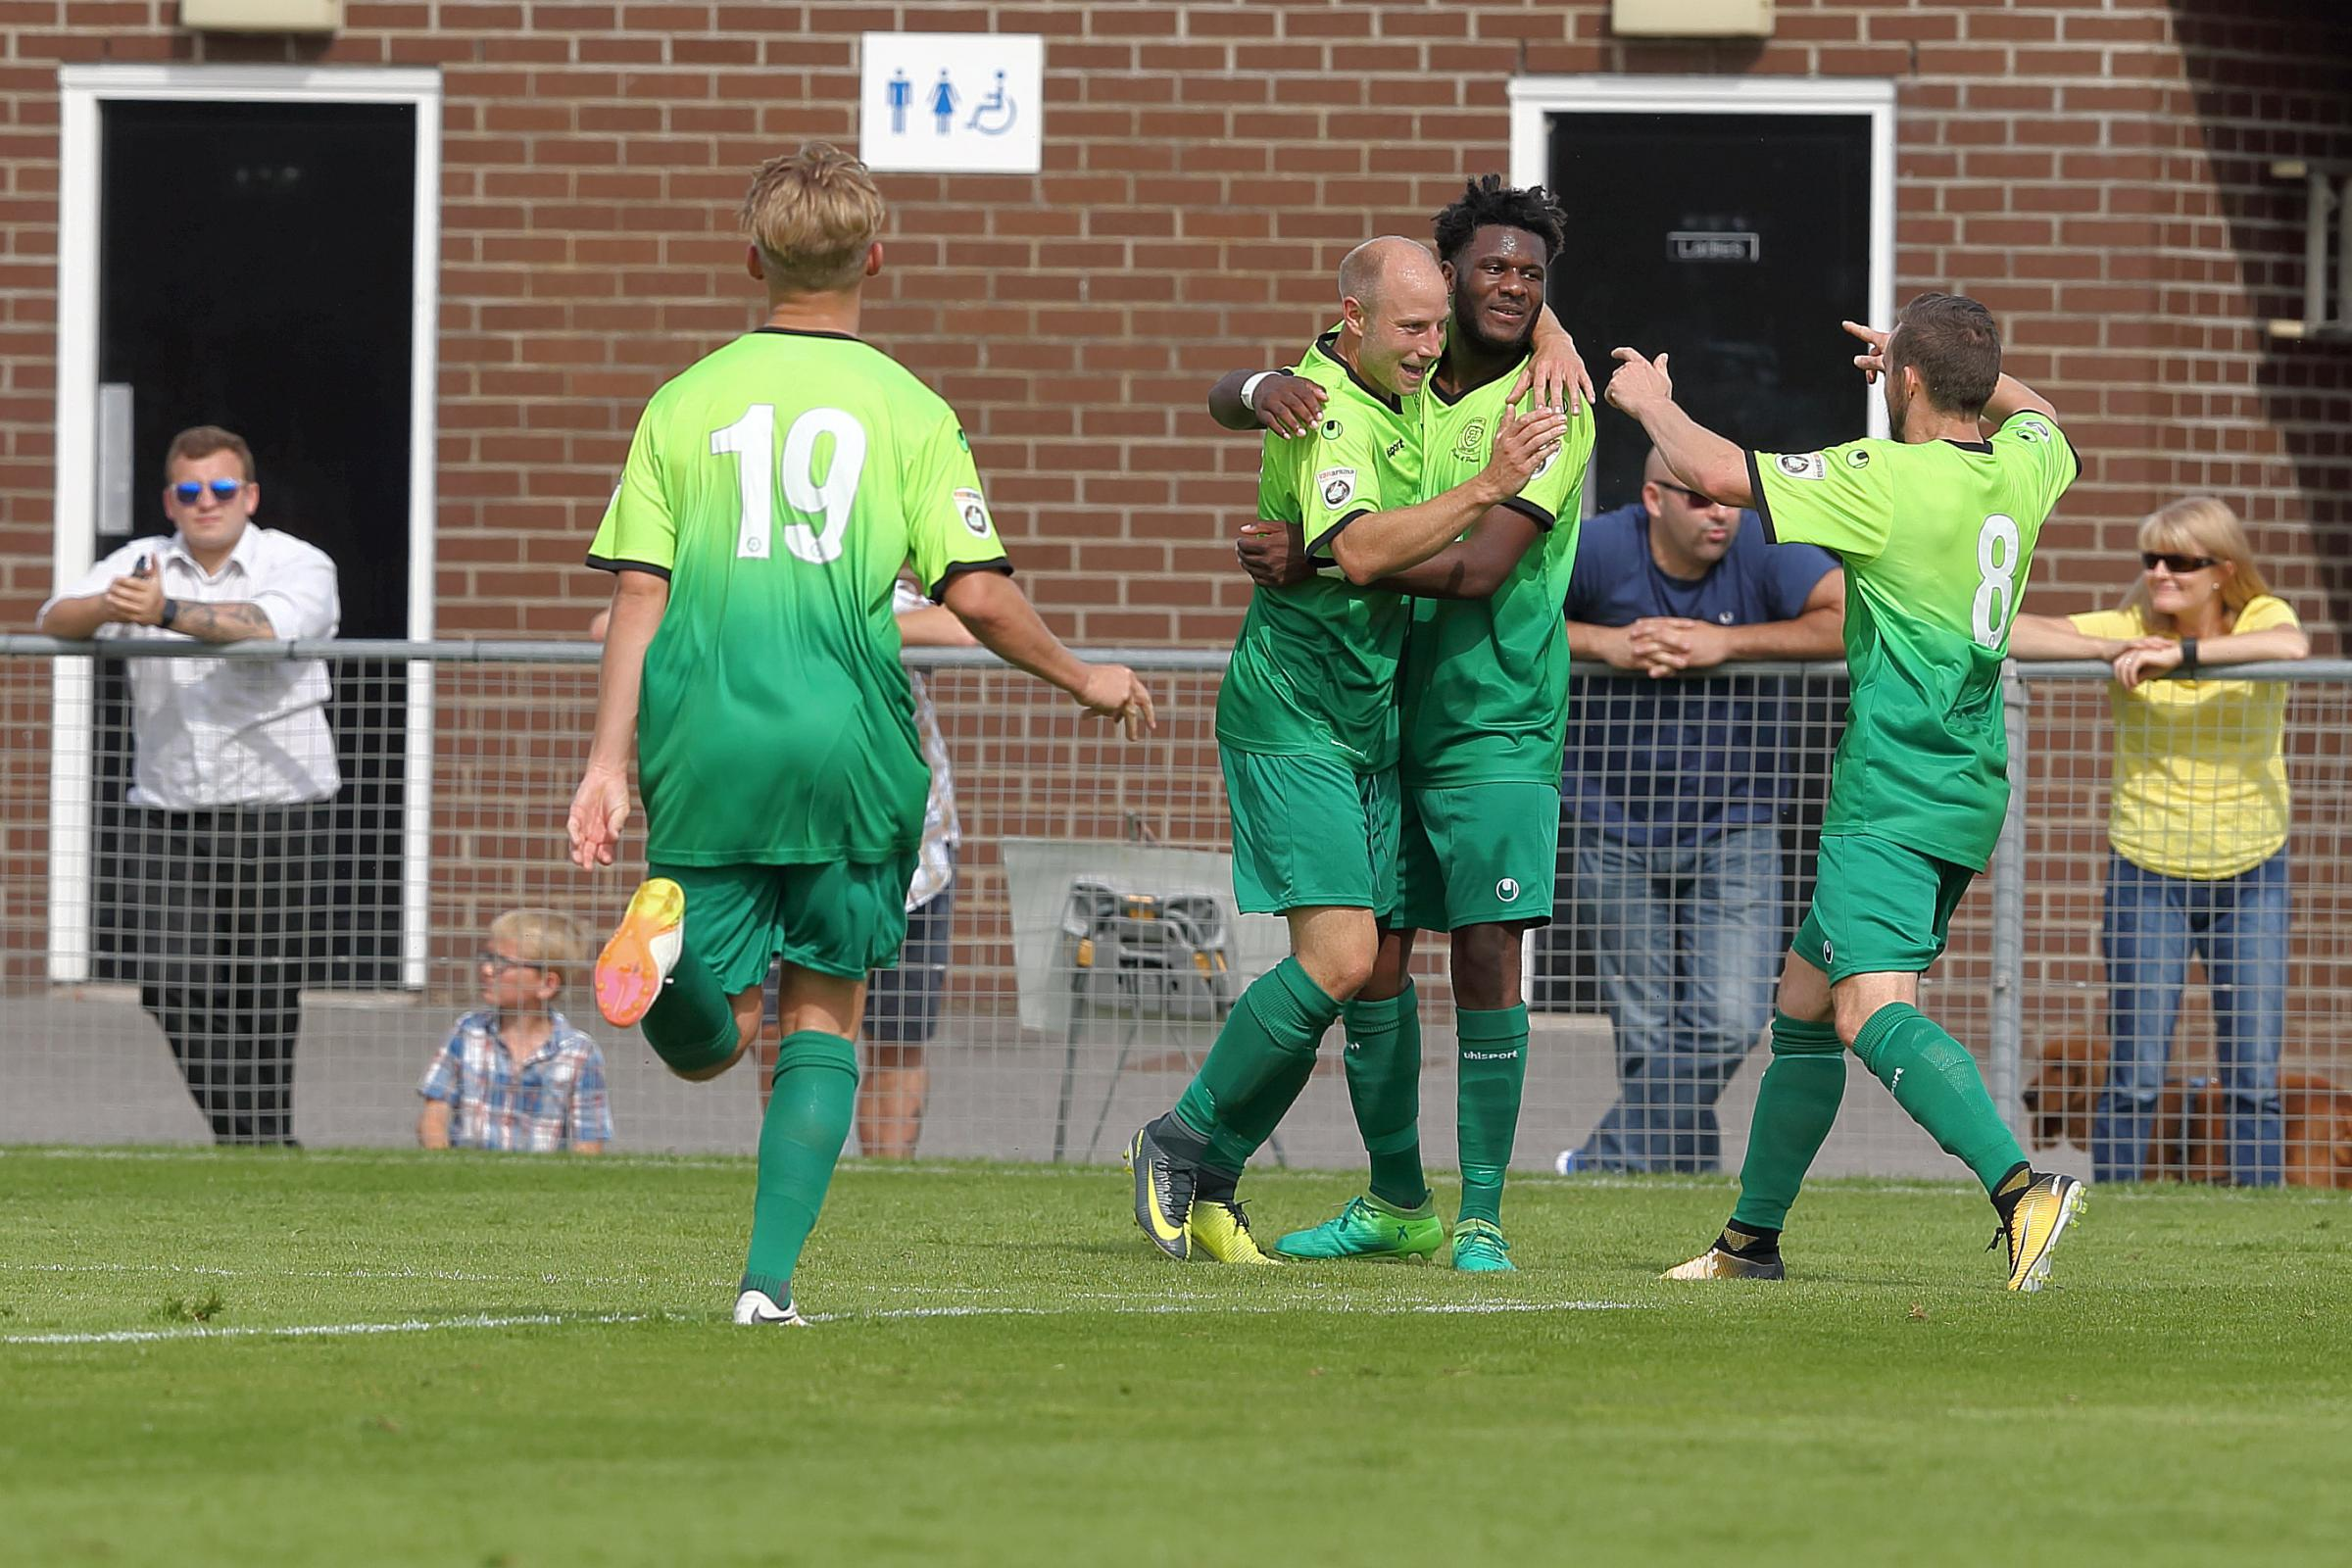 Dave Pratt is congratulated on his goal at Weston-super-Mare. PICTURE: RICHARD CHAPPELL